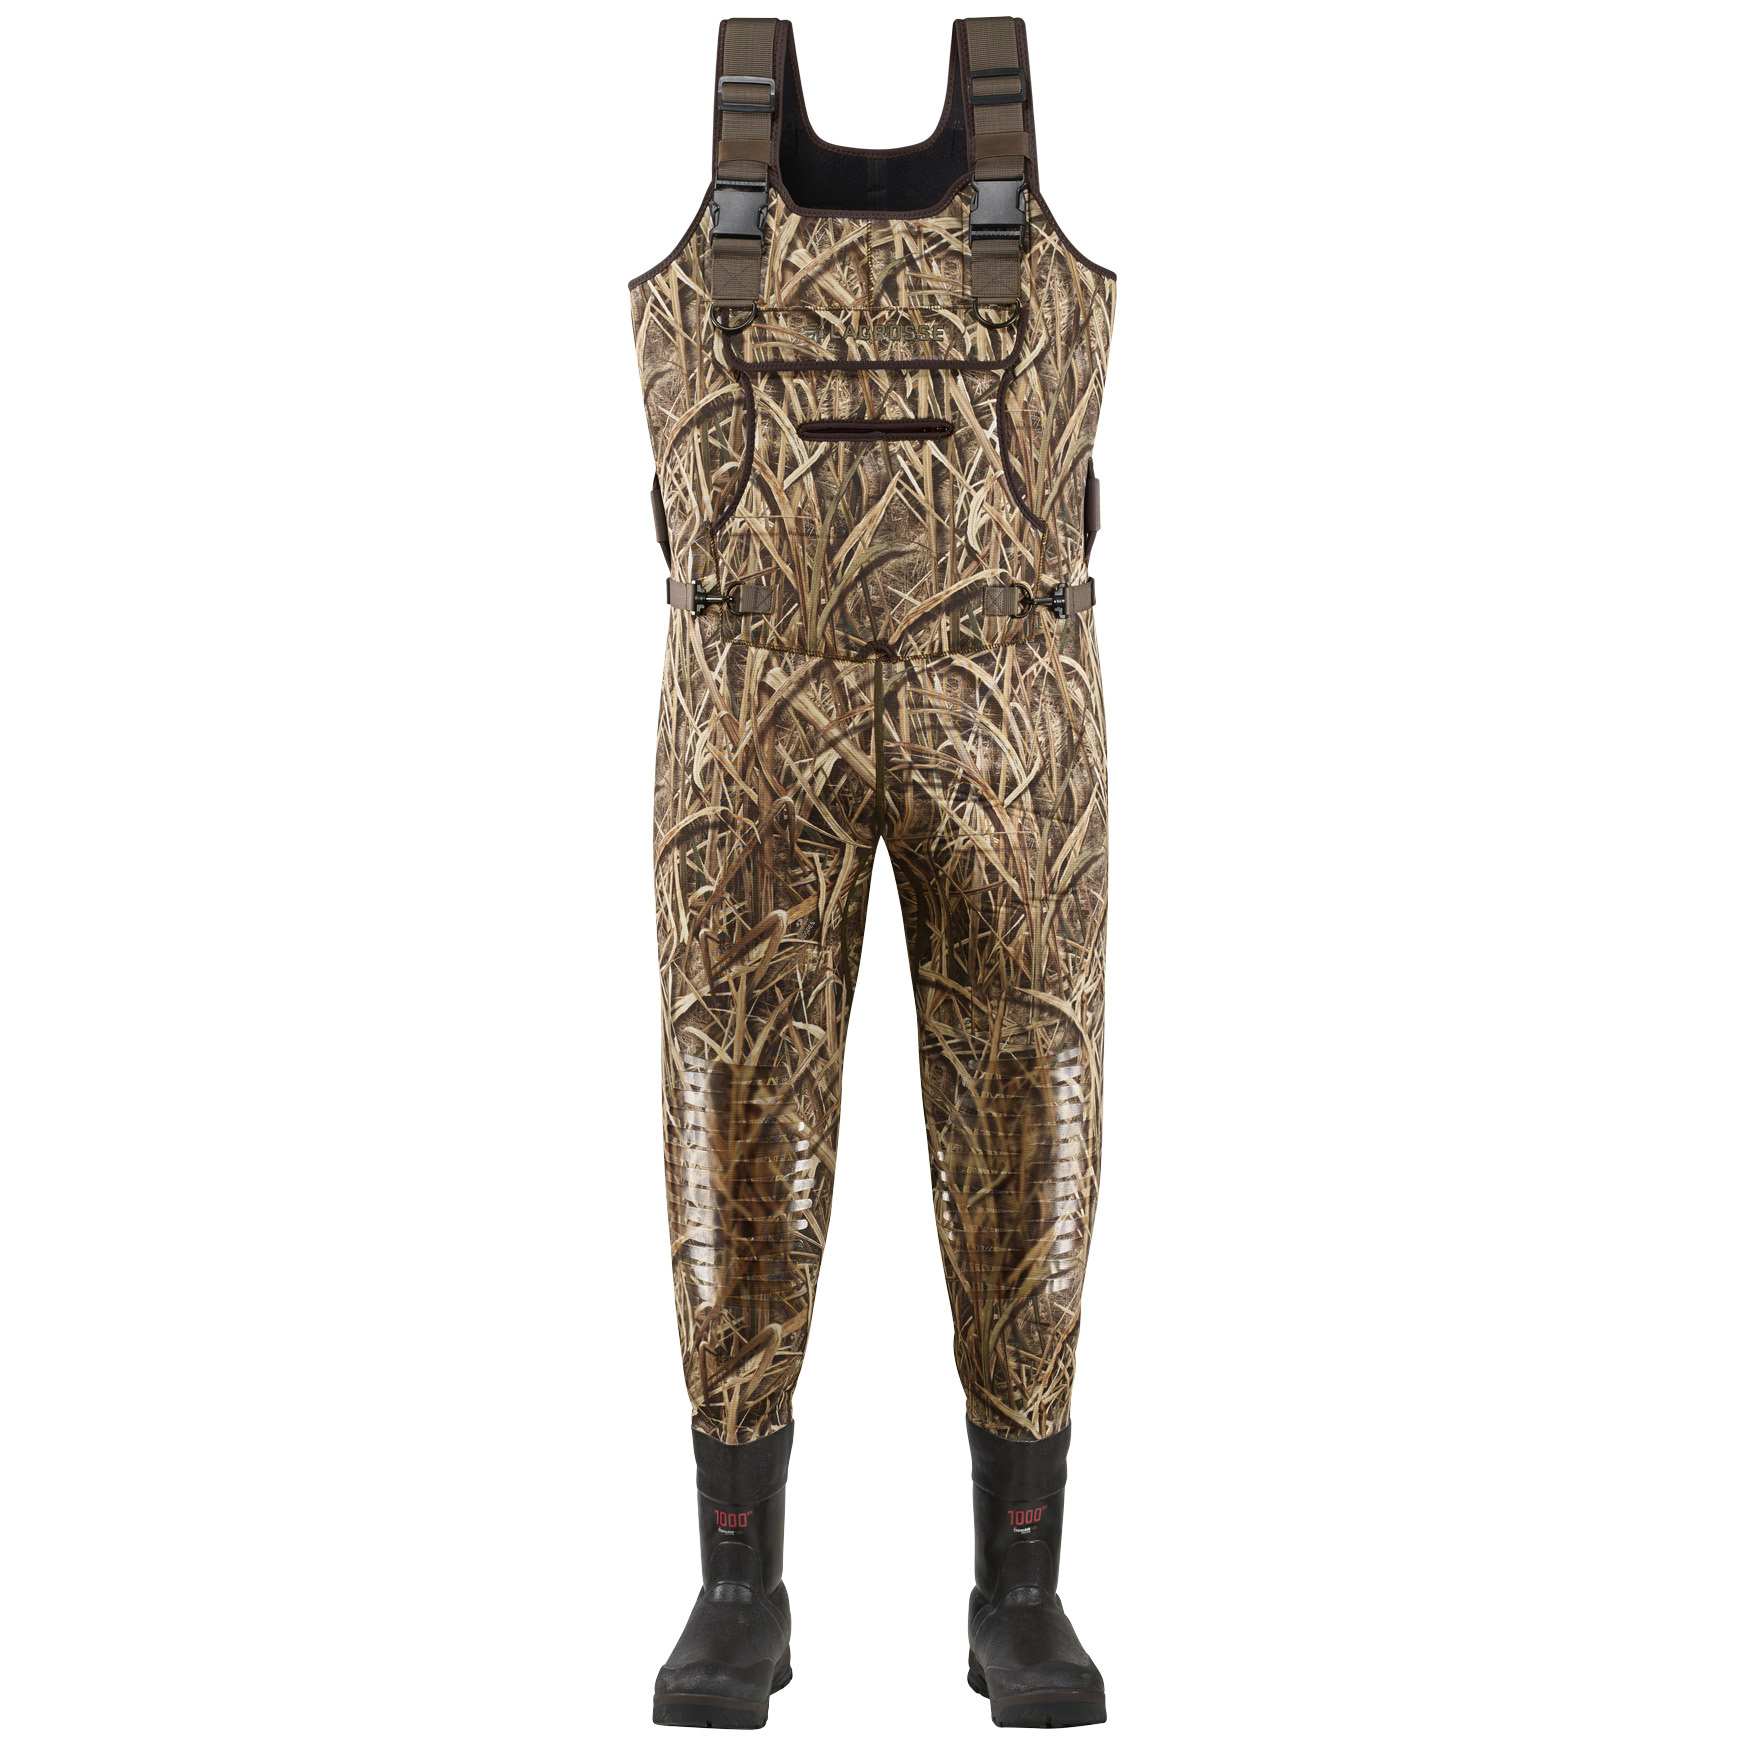 Lacrosse 1,000 Gram Thinsulate Ultra Swamp Tuff Pro Waders offer topnotch dependability with the comfort and warmth to match! The right stuff for the wet stuff! Swamp Tuff Waders keep you dry, comfortable and warm as you slog through unforgiving wetlands. Its stretchy 3.5mm neoprene is put together the LaCrosse way, with double-stitched seams and a polyurethane protective coating in the knees and seat for leak-proof dependability.Features: Heavyweight 5mm fleece-lined neoprene upper 3.5mm neoprene boot bottoms with 1,000 gram Thinsulate Ultra Insulation 100% WATERPROOF Swamp Tuff low lug outsole for topnotch traction Lacrosse's Brush Tuff bi-directional material is abrasion resistant Armor Weld liquid rubber protective coating on double stitched seams for durability Polyurethane protective coating on knees and seat VELCRO Brand straps and buckle create a belt when folded down Removable rollout shell pouch Rollout game bag Top loading pocket, waterproof front pocket and hand warmer Removable waterproof internal pocket Detachable waist belt for an adjustable fit Contoured ankle-fit design to prevent heel slippage.State Color and Size, as available in the Shopping Cart. - $299.99